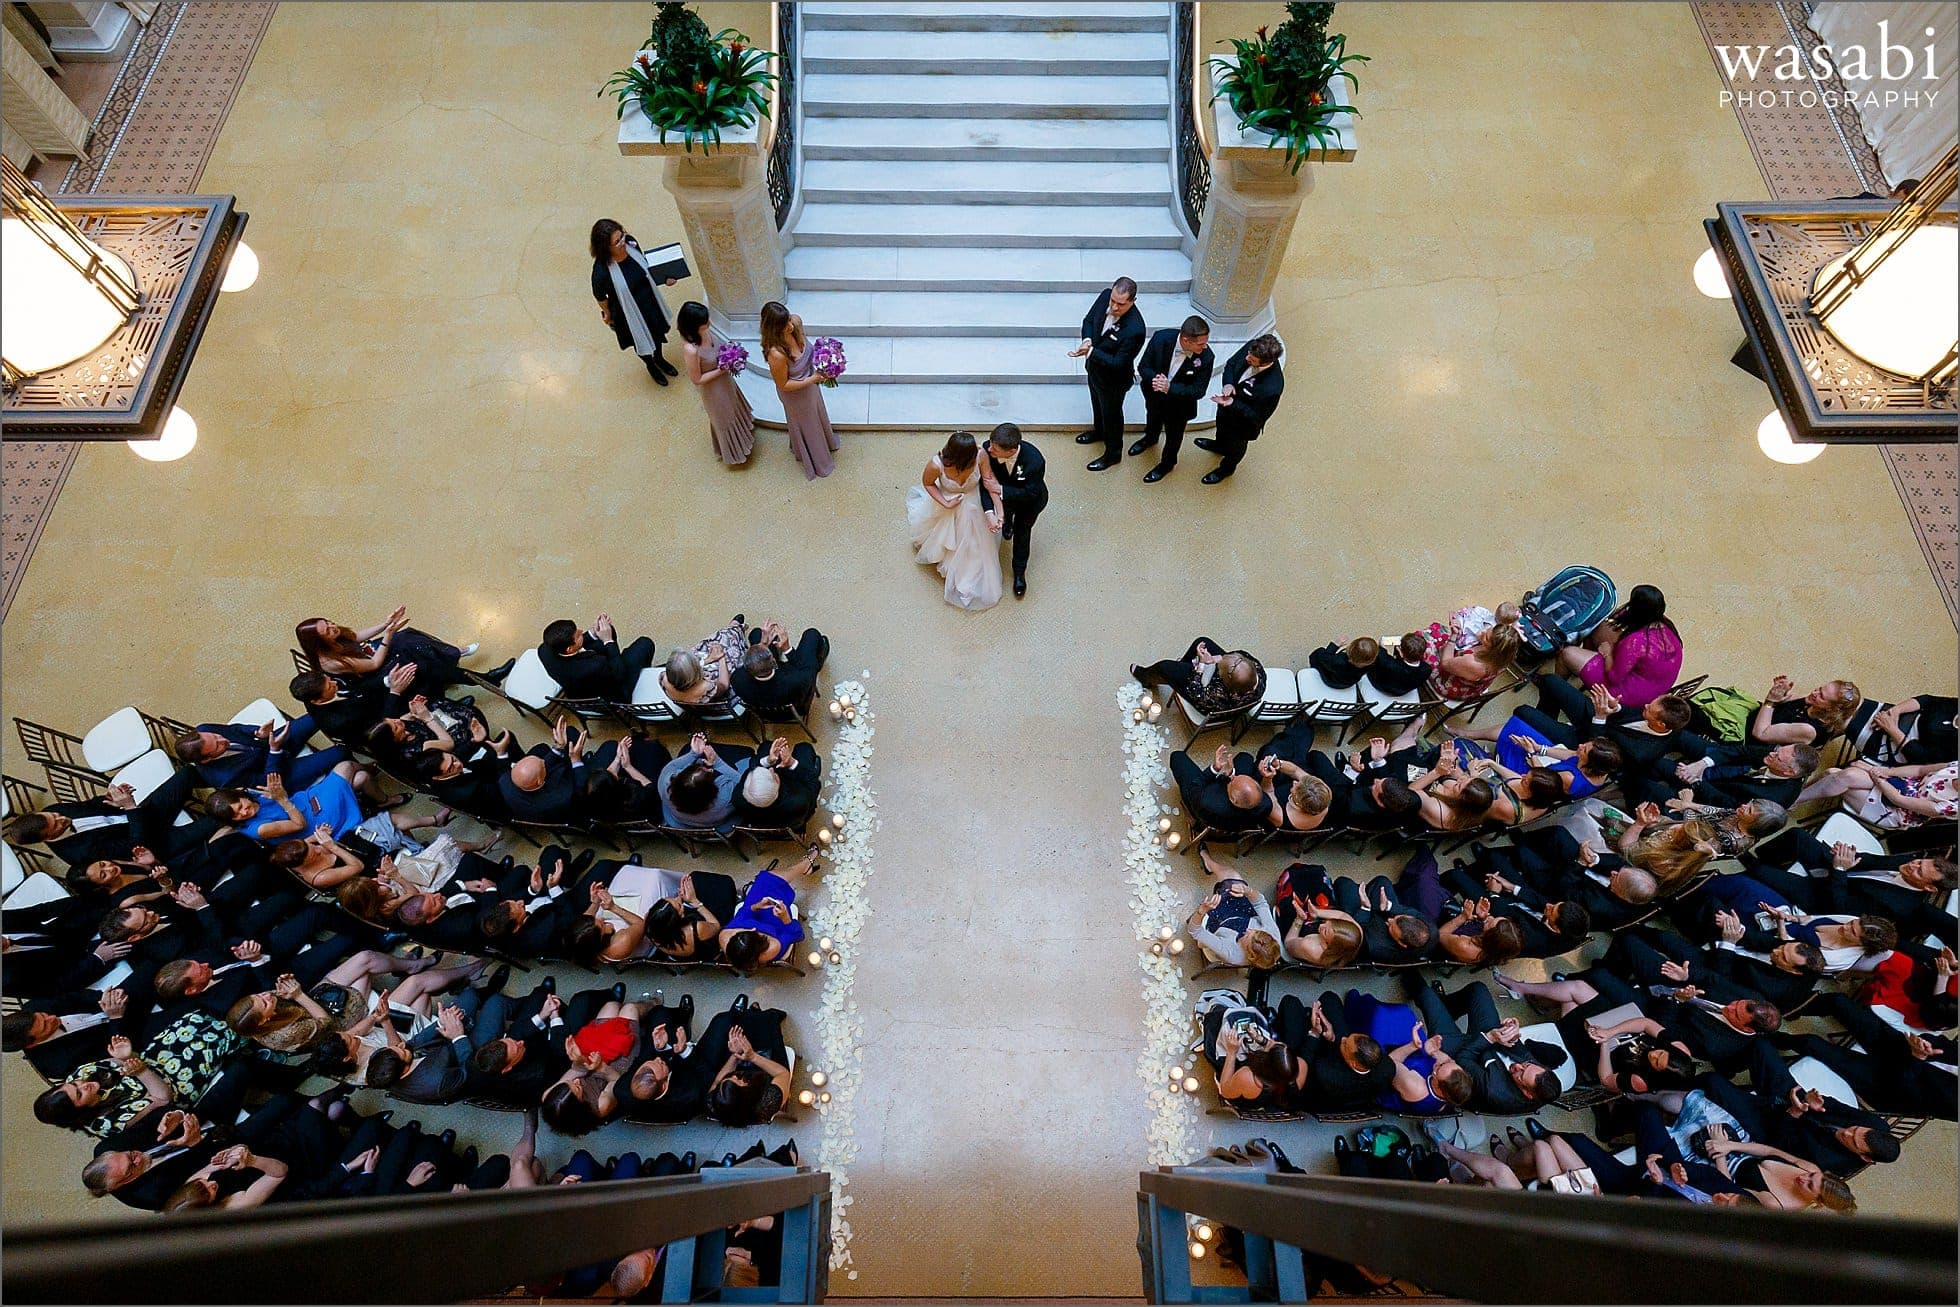 wide angle view from the stairs looking straight down after wedding ceremony concludes The Rookery Building in Chicago